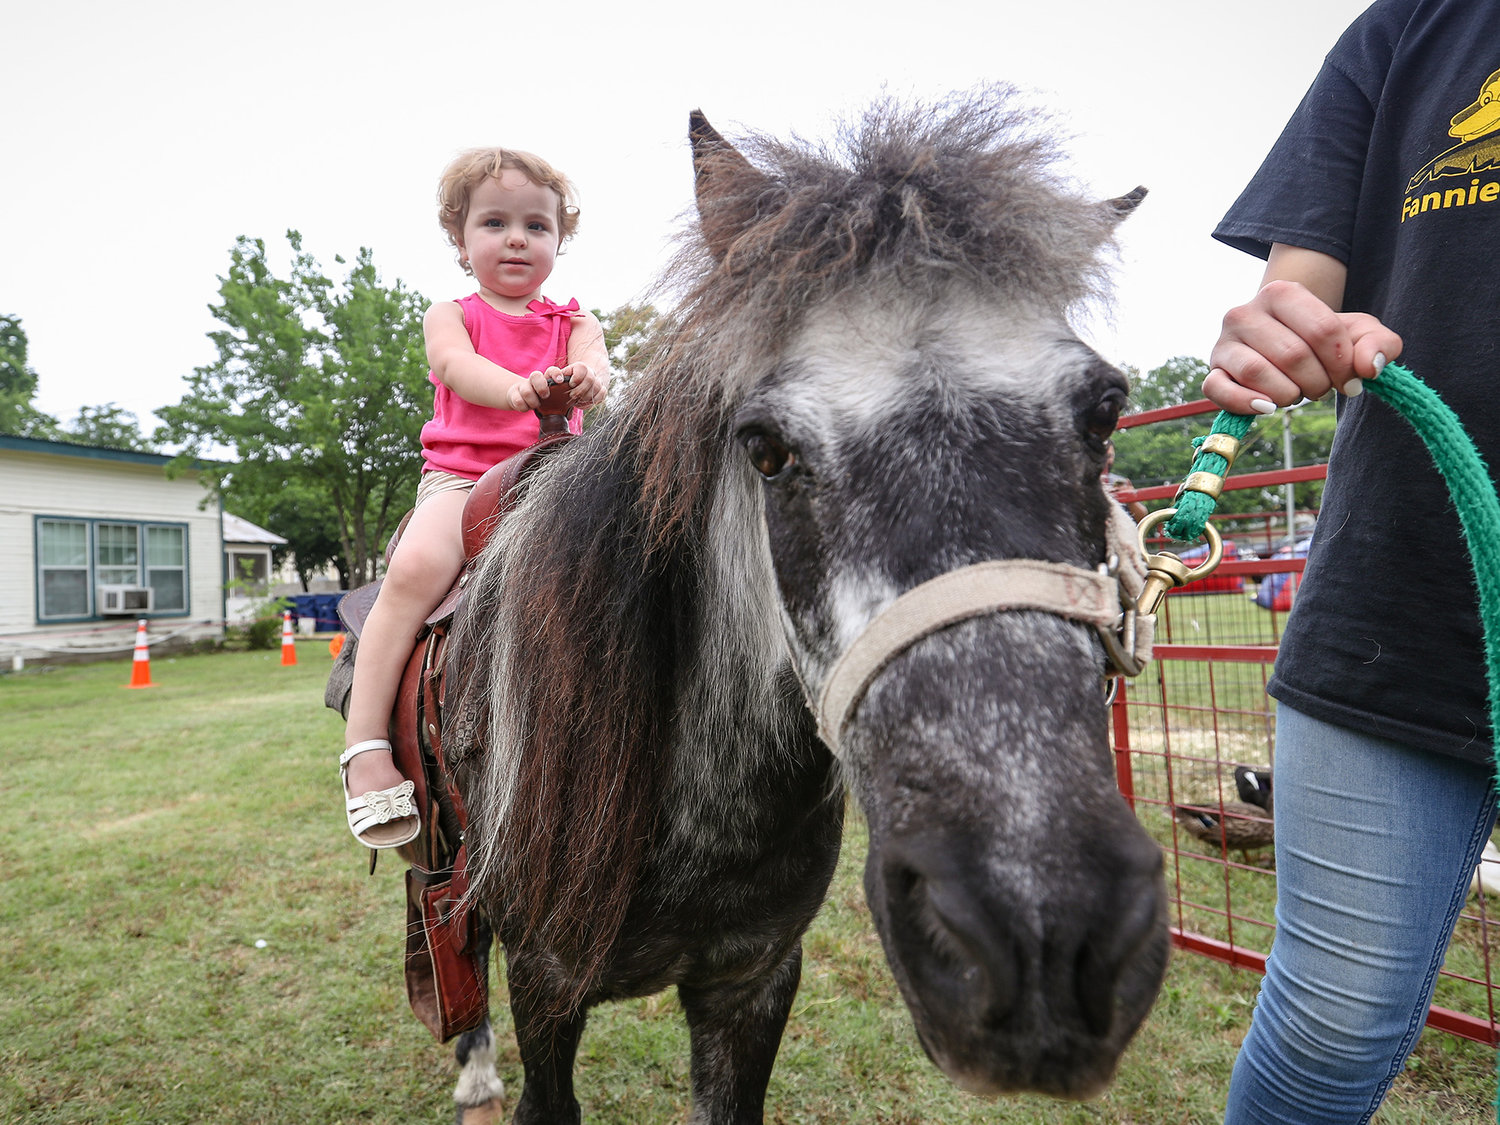 Attendees enjoyed a number of family-friendly rides, events and games at the Leander Old Town Street Festival on May 18, 2019.